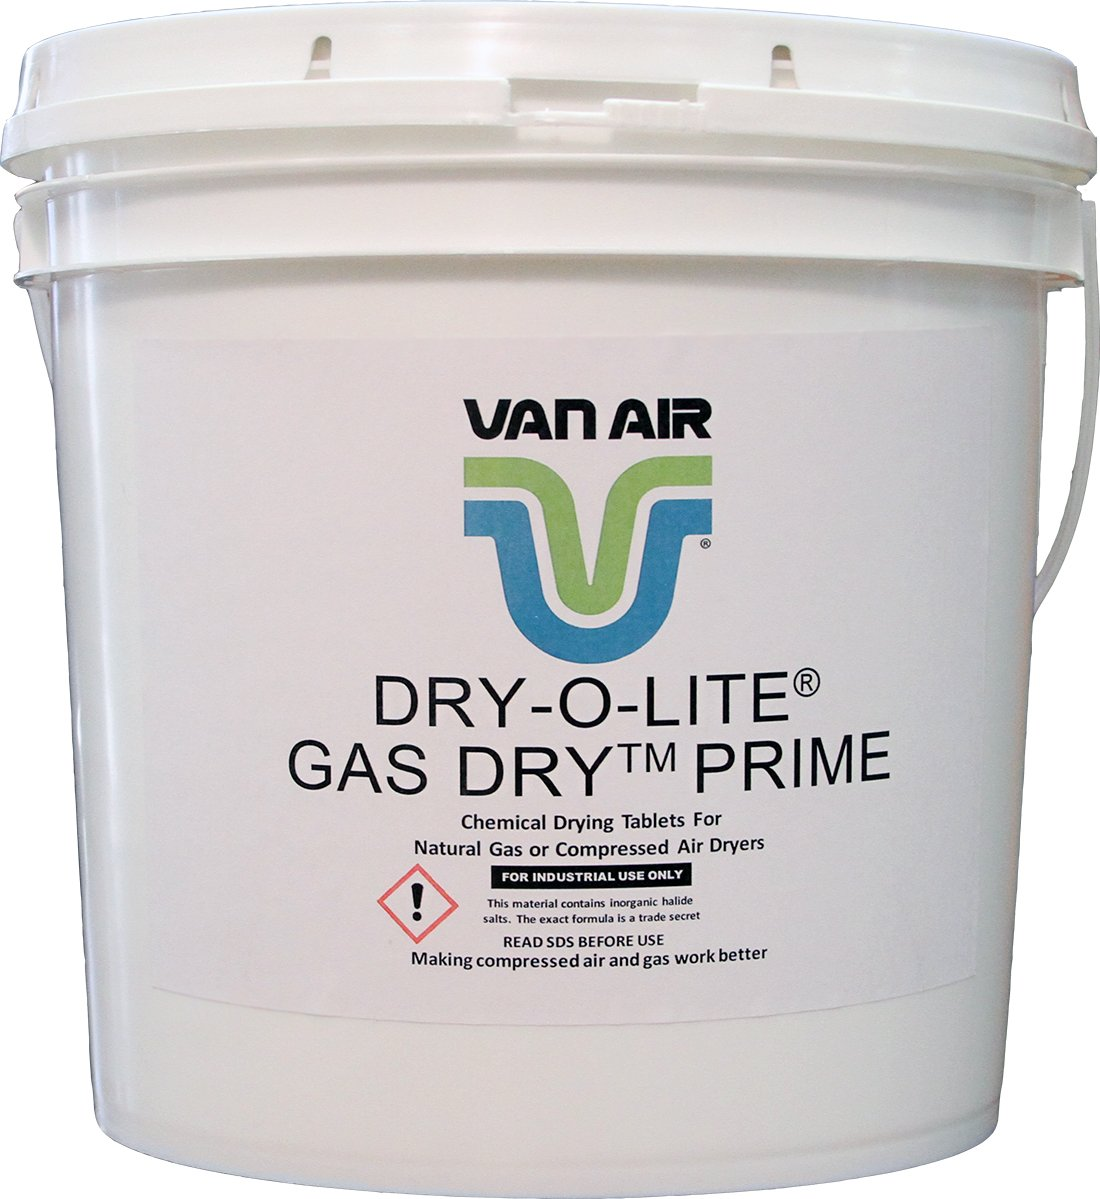 Van Air Systems 33-0403 Dry-O-Lite Desiccant, 18 lb Pail, Cylindrical, White